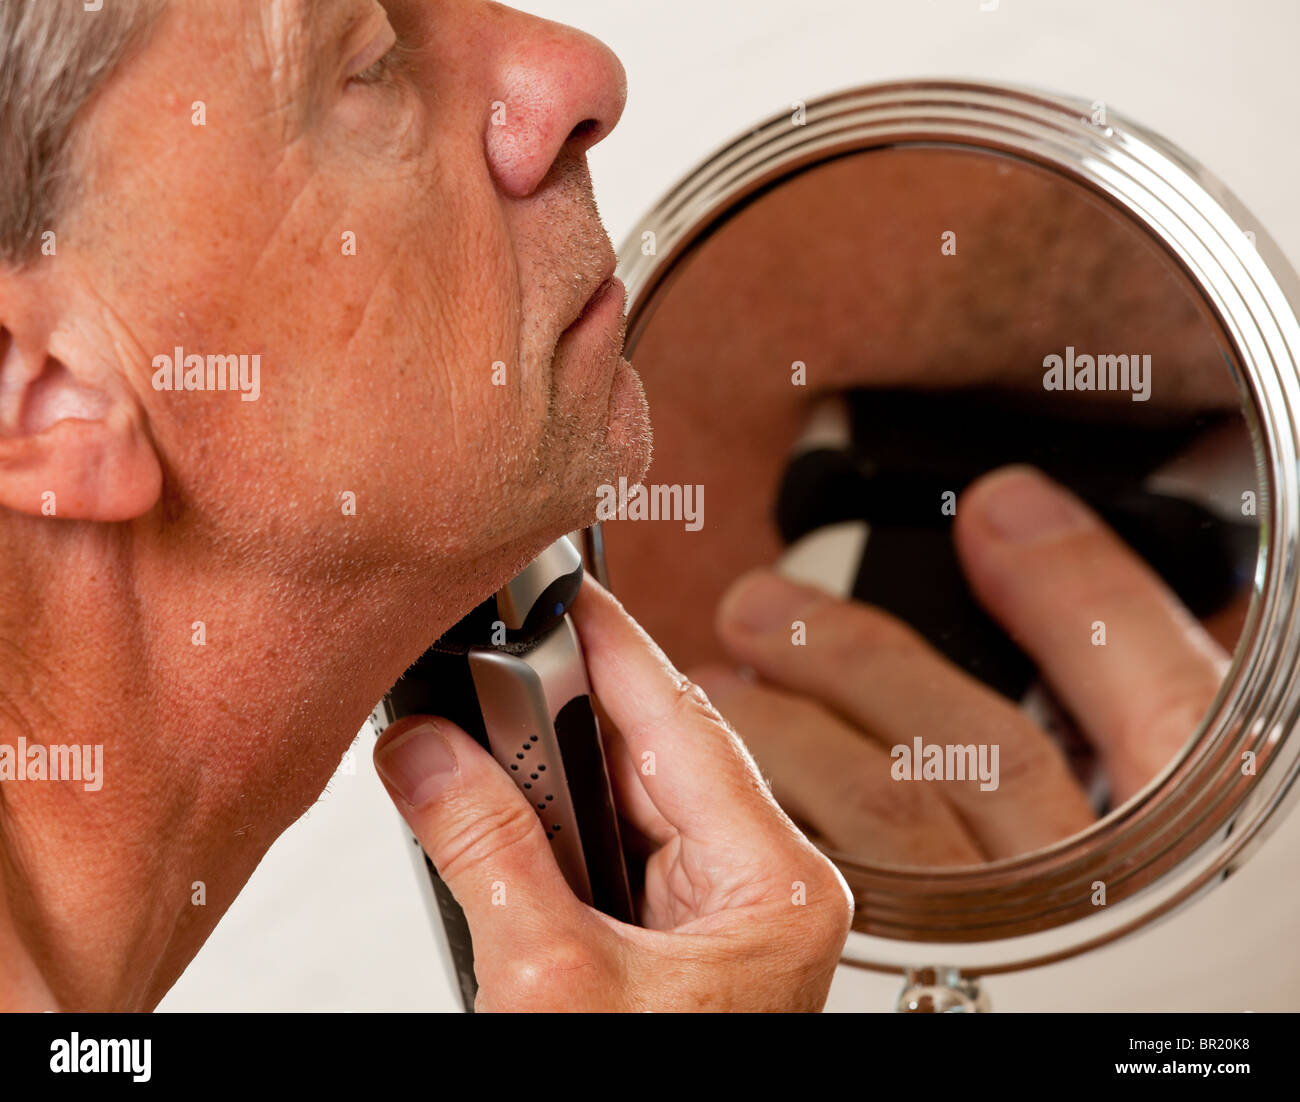 Retired senior man shaving with electric razor in front of magnifying mirror - Stock Image